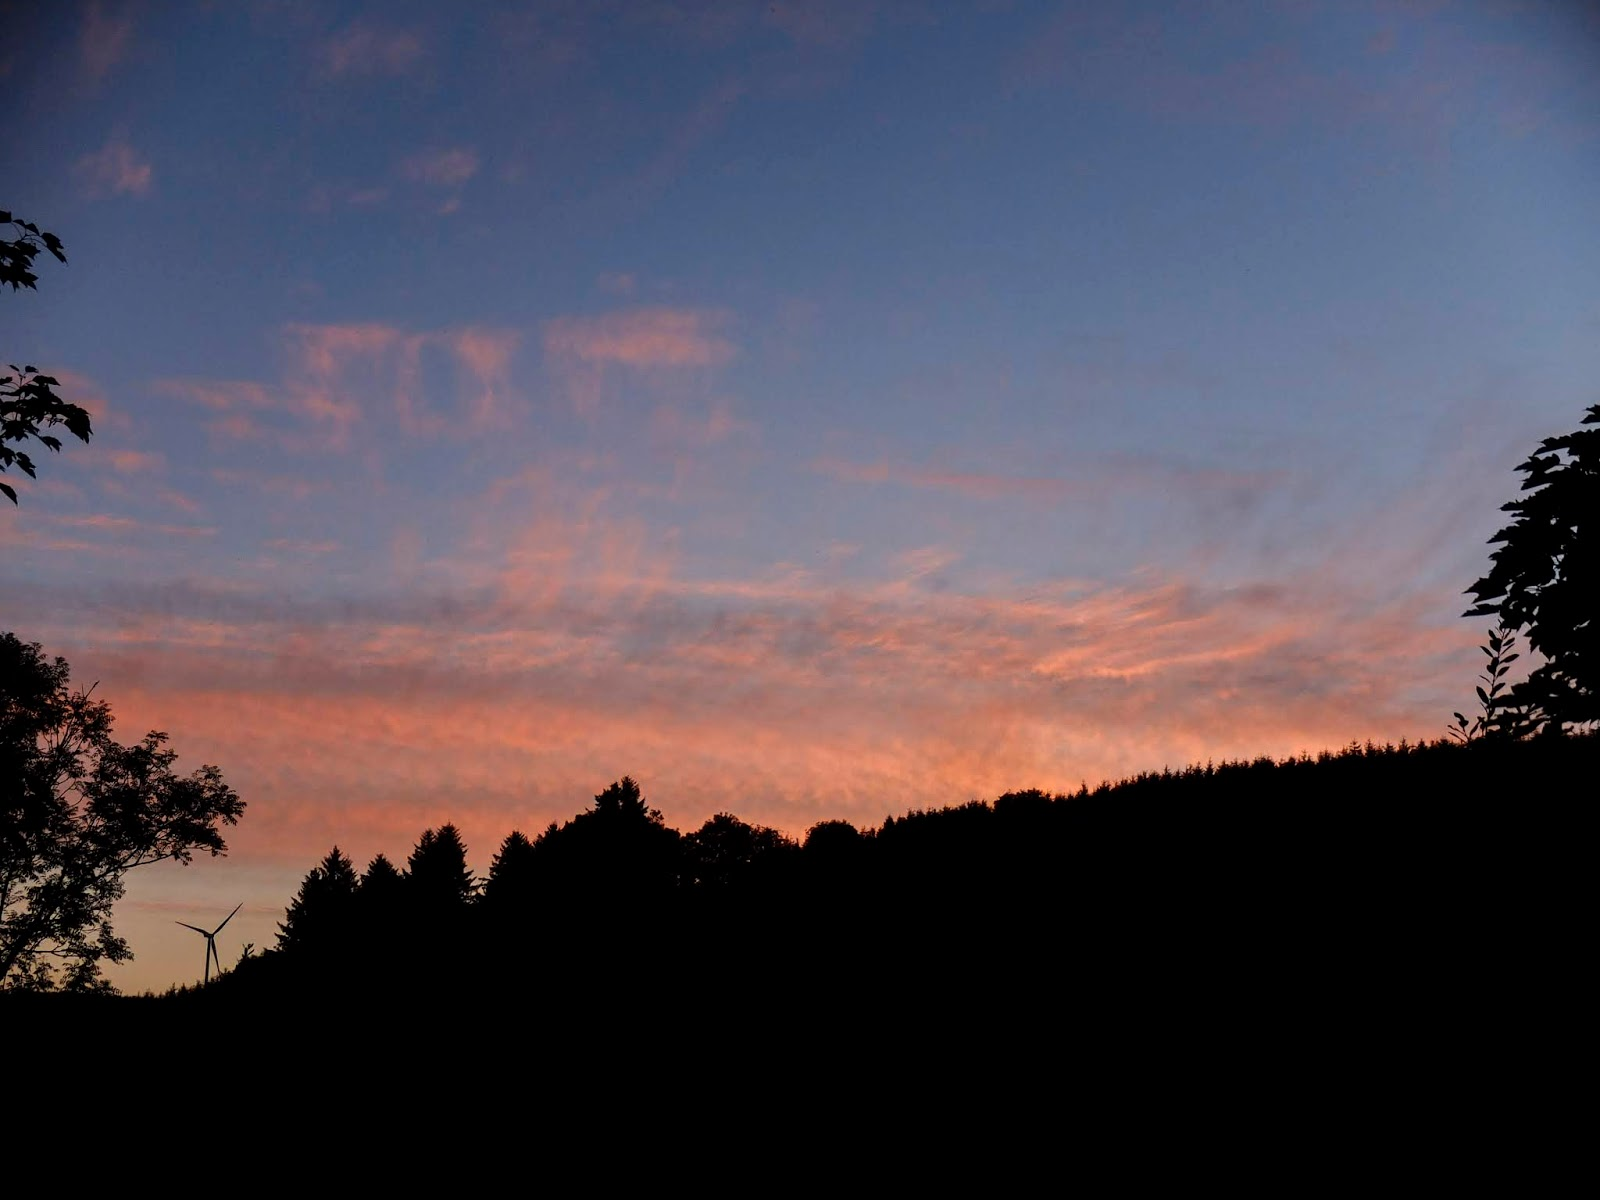 Light pink clouds on a light blue sky after sunset in the Boggeragh Mountains.